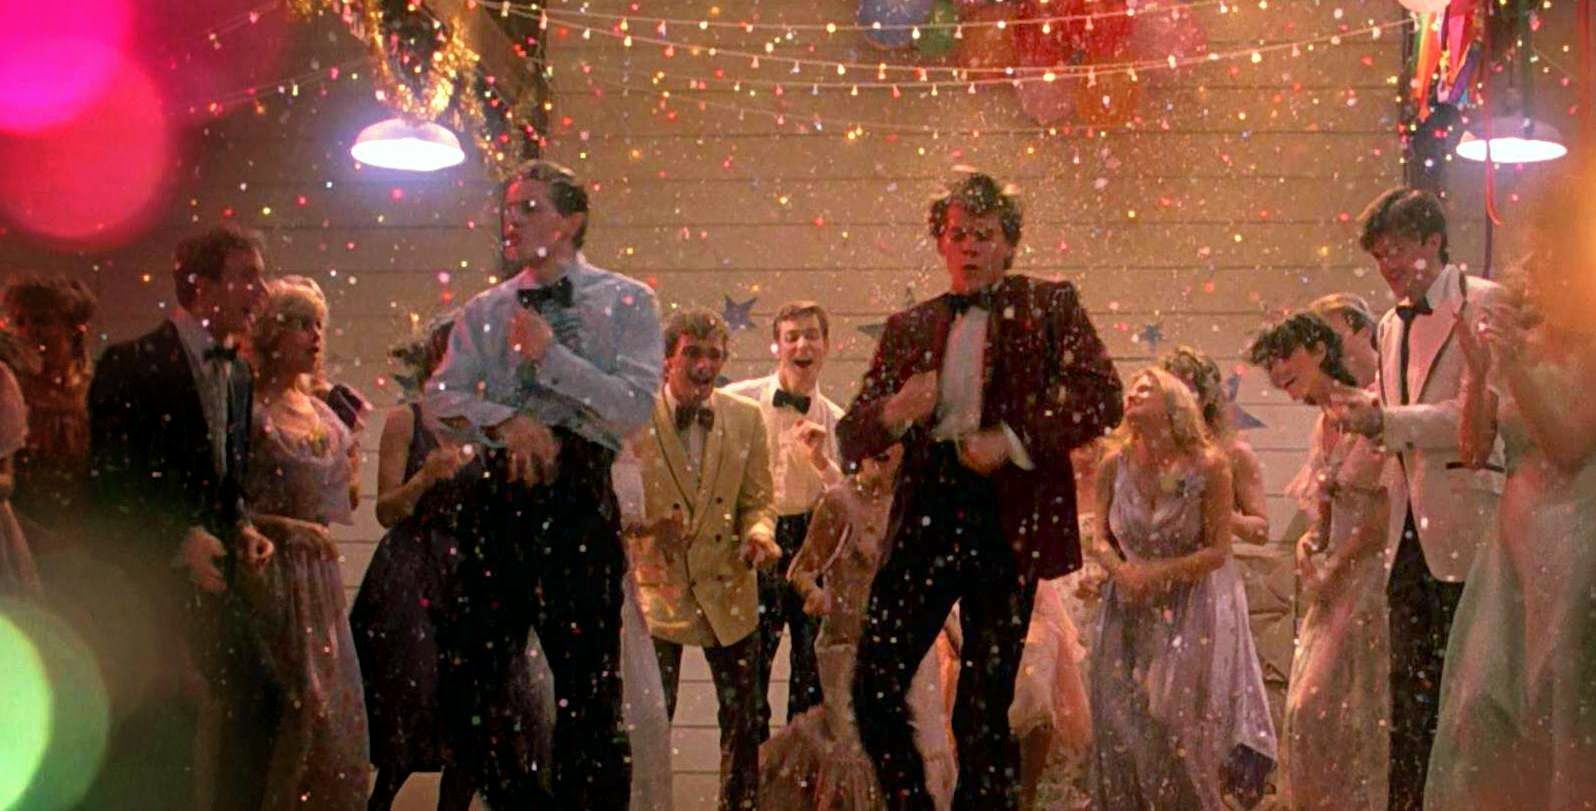 Manic Monday - Footloose (1984) Final Dance Scene | Most popular wedding  songs, Popular wedding songs, Popular wedding dance songs